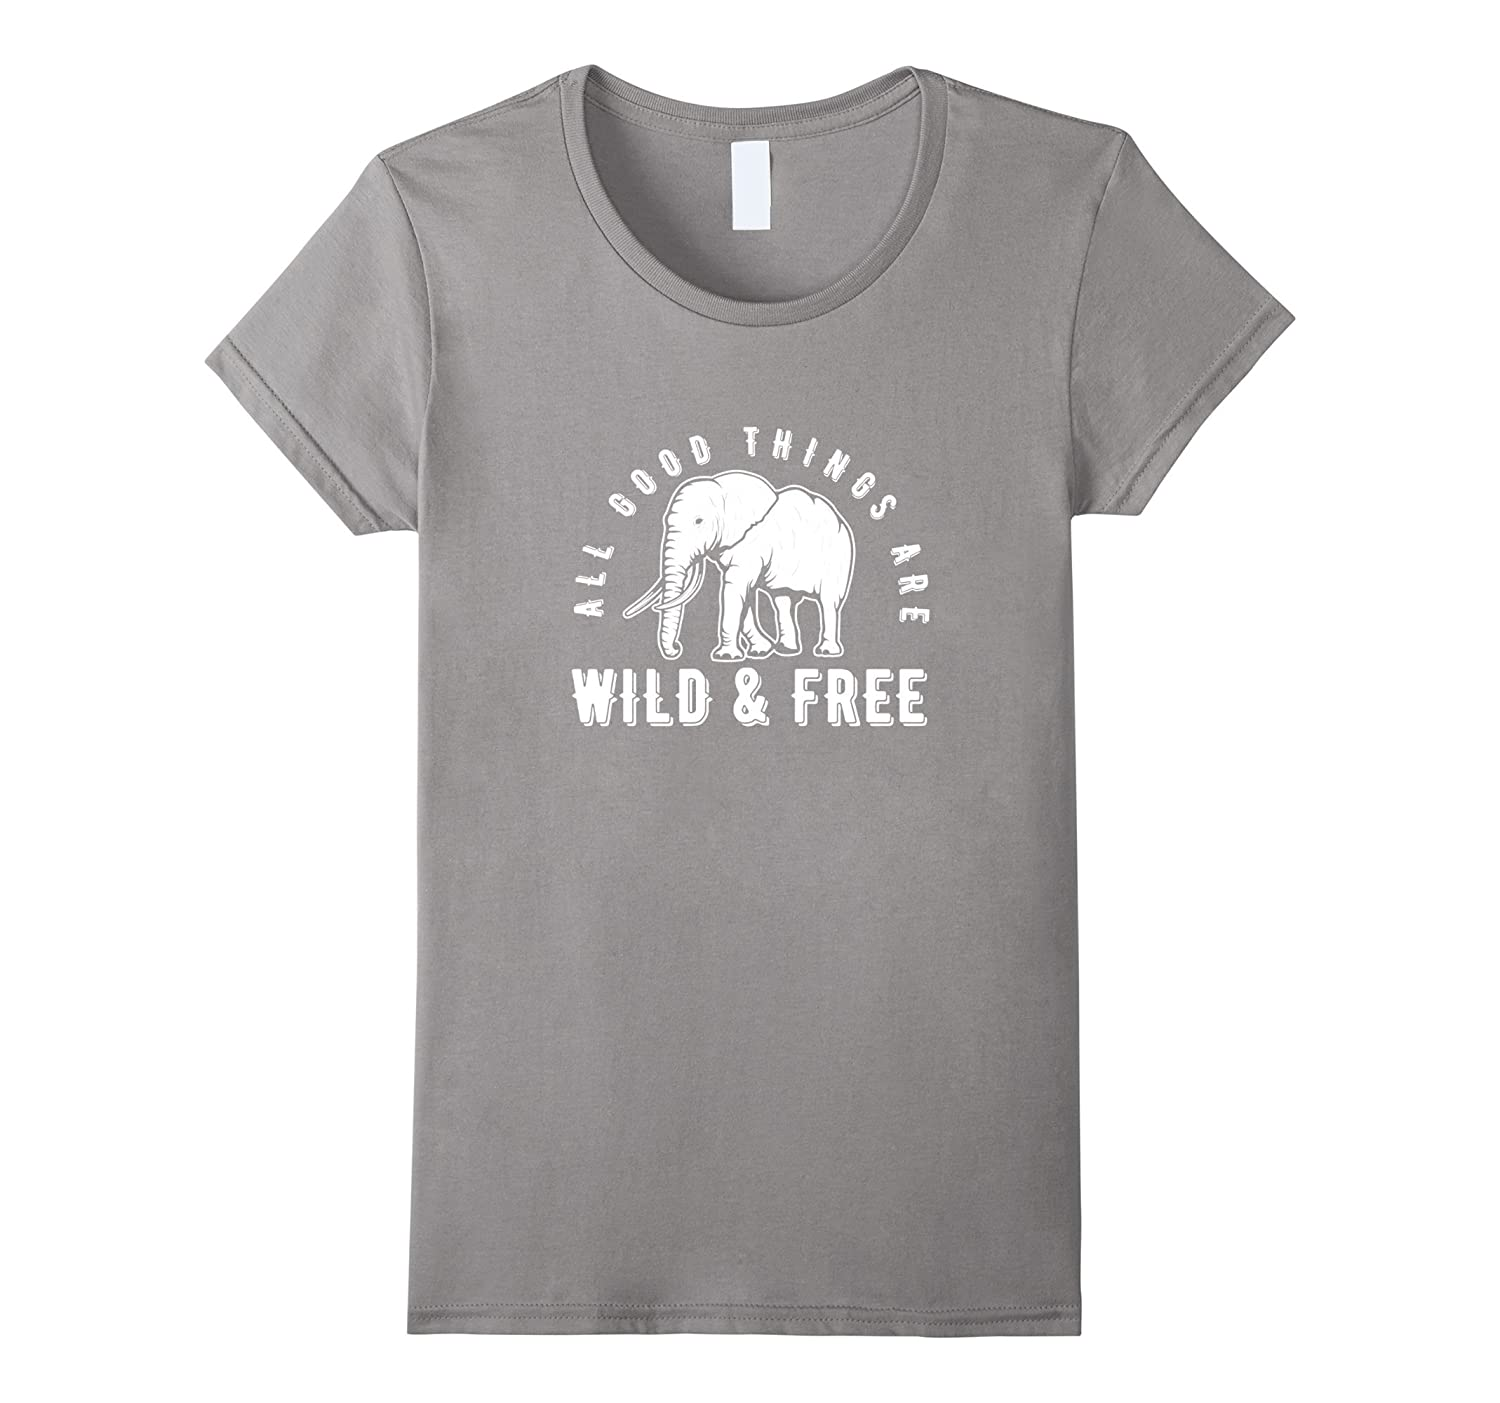 All Good Things Are Wild & Free – Elephant Lover T-Shirt